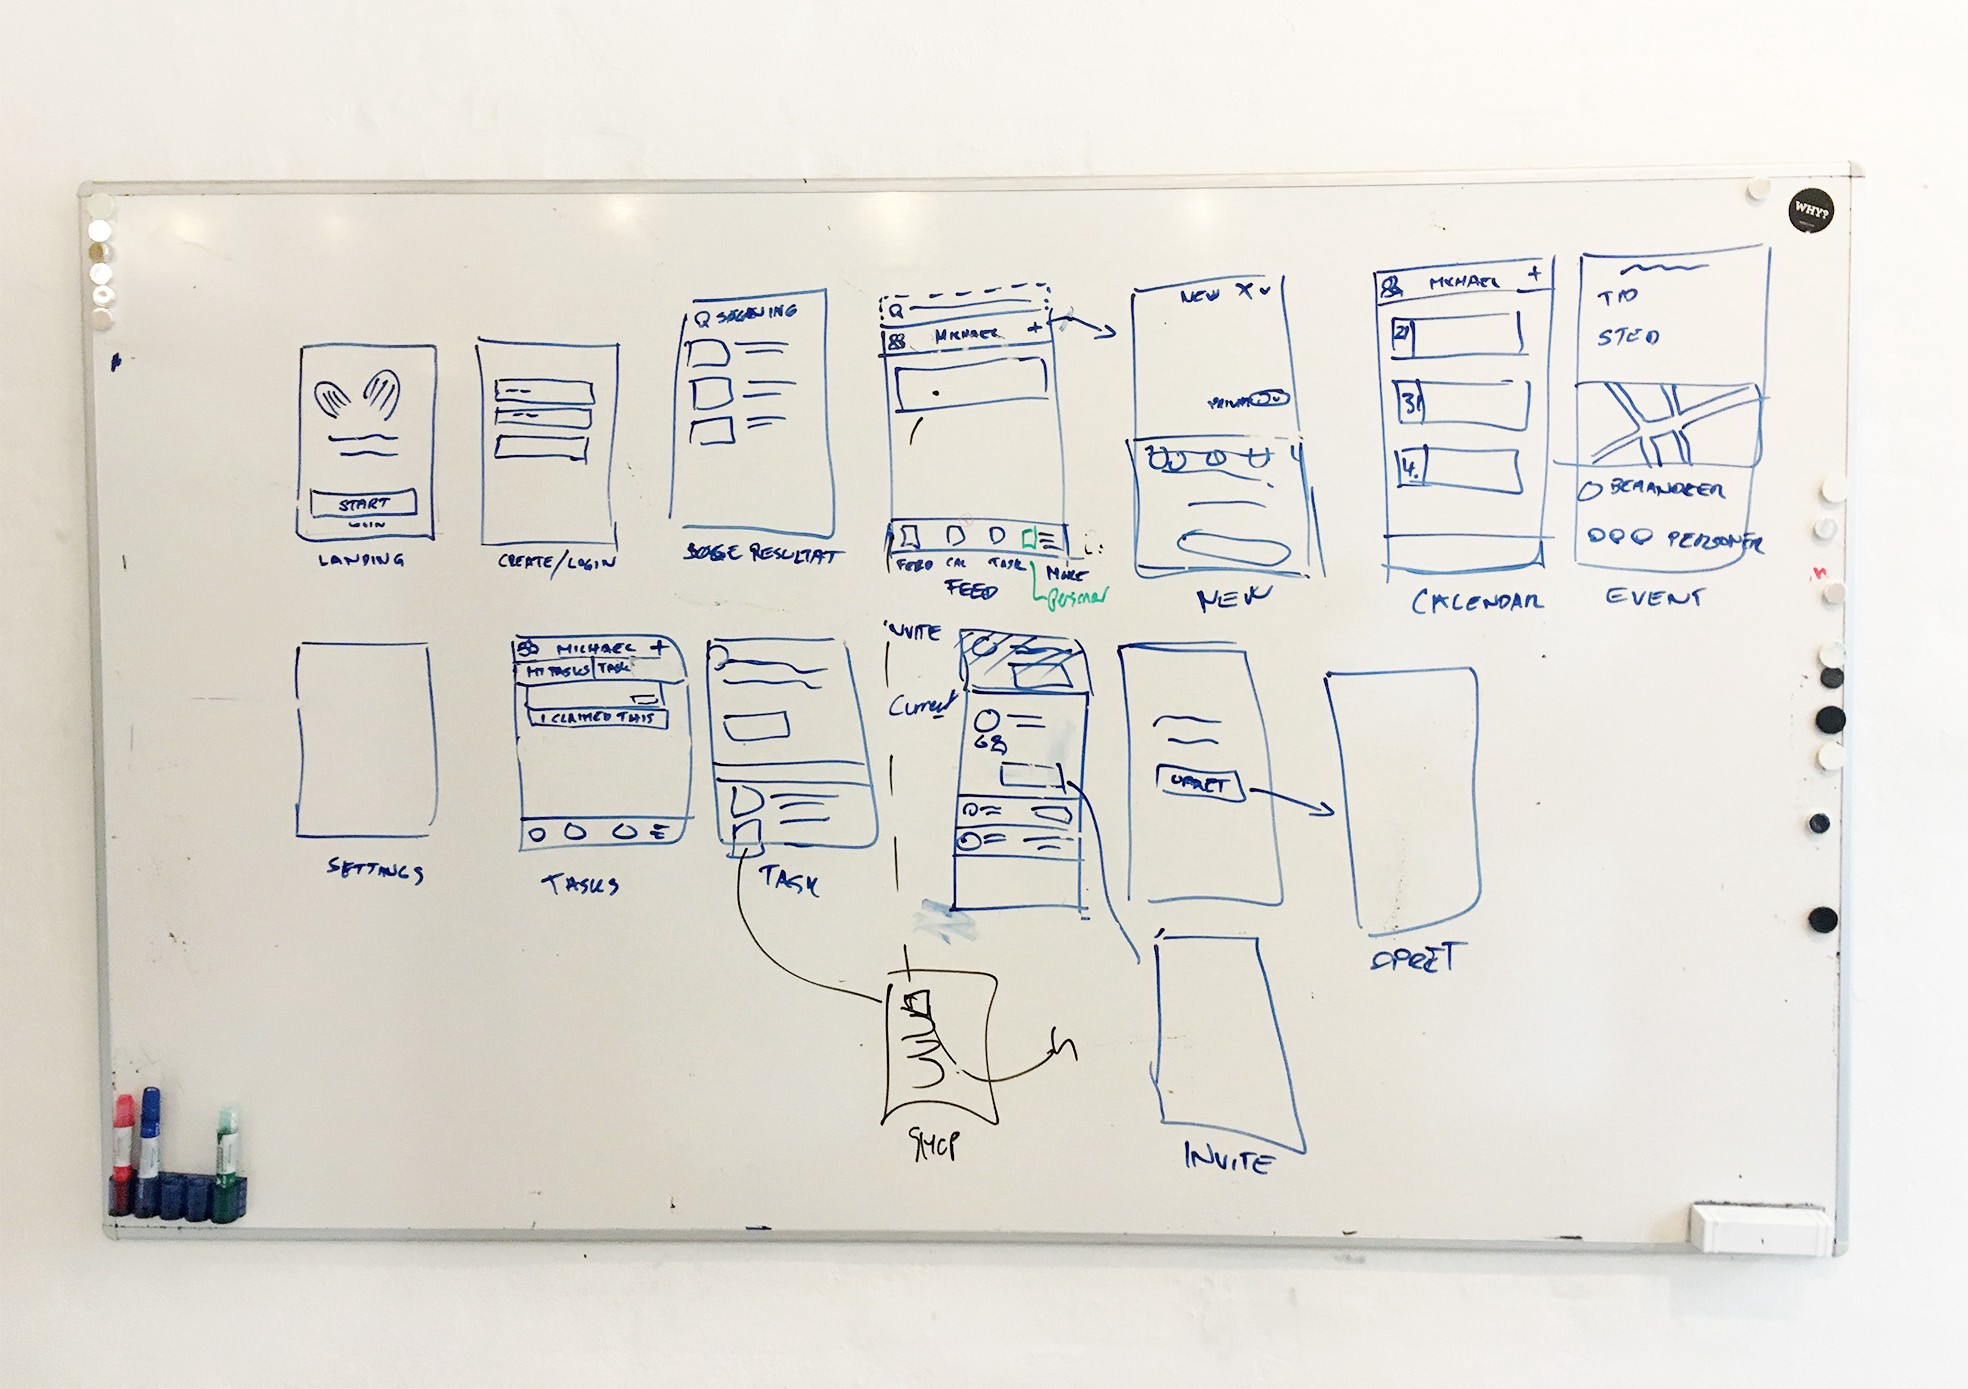 What Everyone Should Know About The Process of Designing Apps